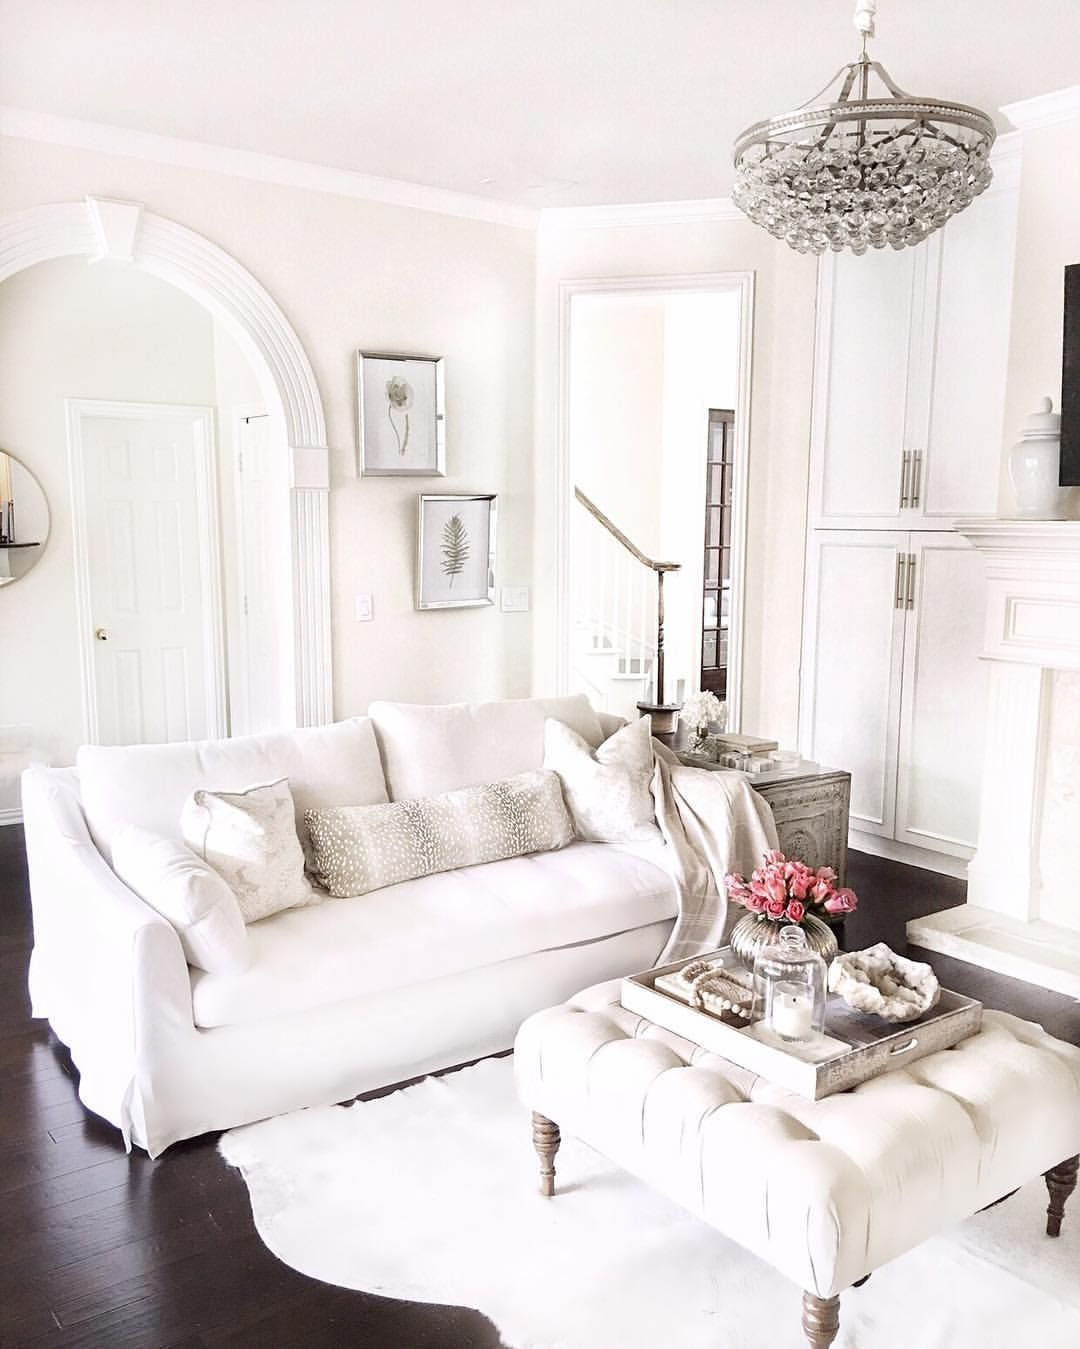 My Living Room On A Budget White Sofa Farlov Ikea Sofa Ikea Sofa Crystal Chandelier Decorating W Glam Living Room Living Room White White Sofa Living Room